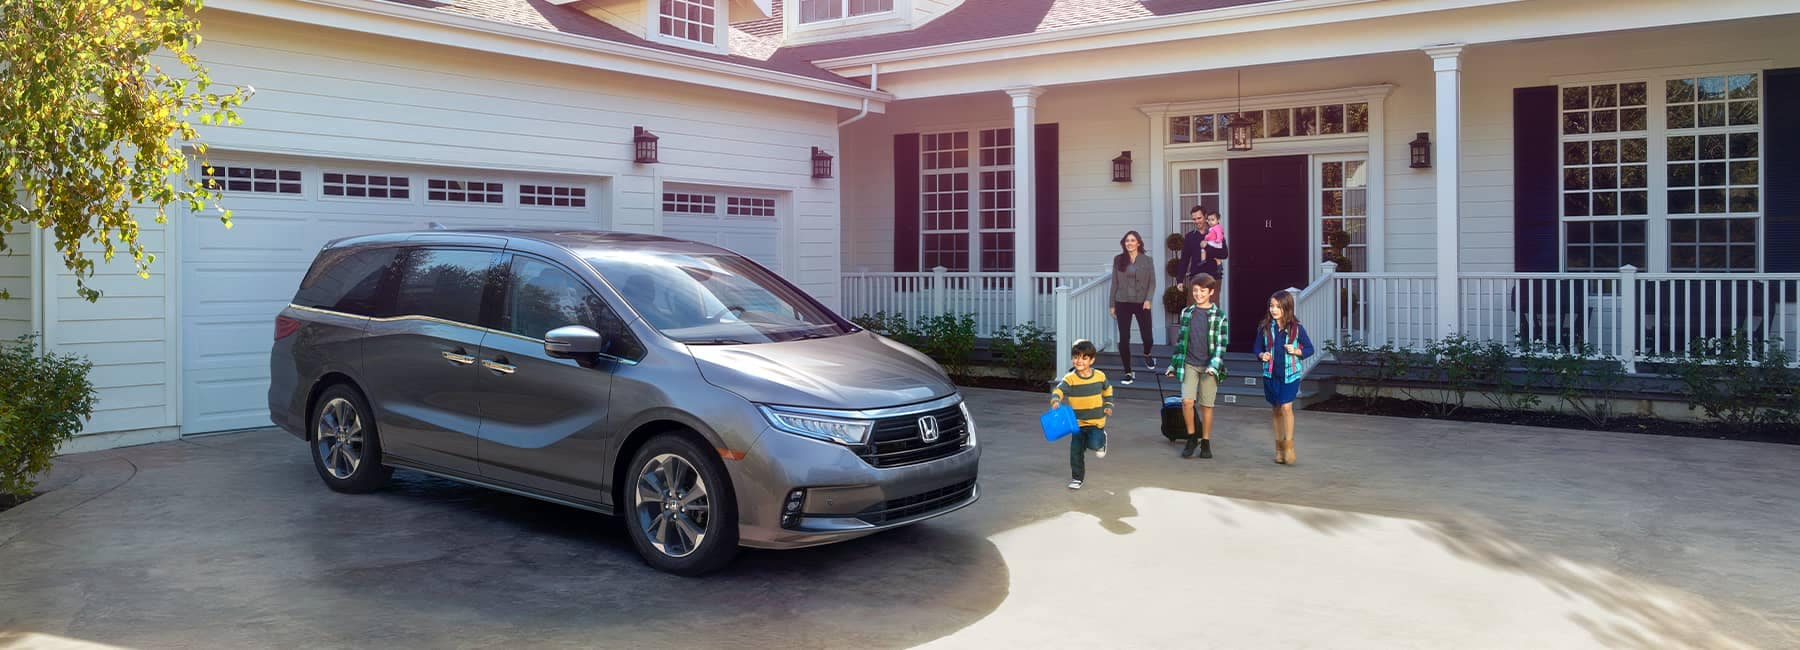 2021 Silver Honda Odyssey parked in front of a white home with black shutters